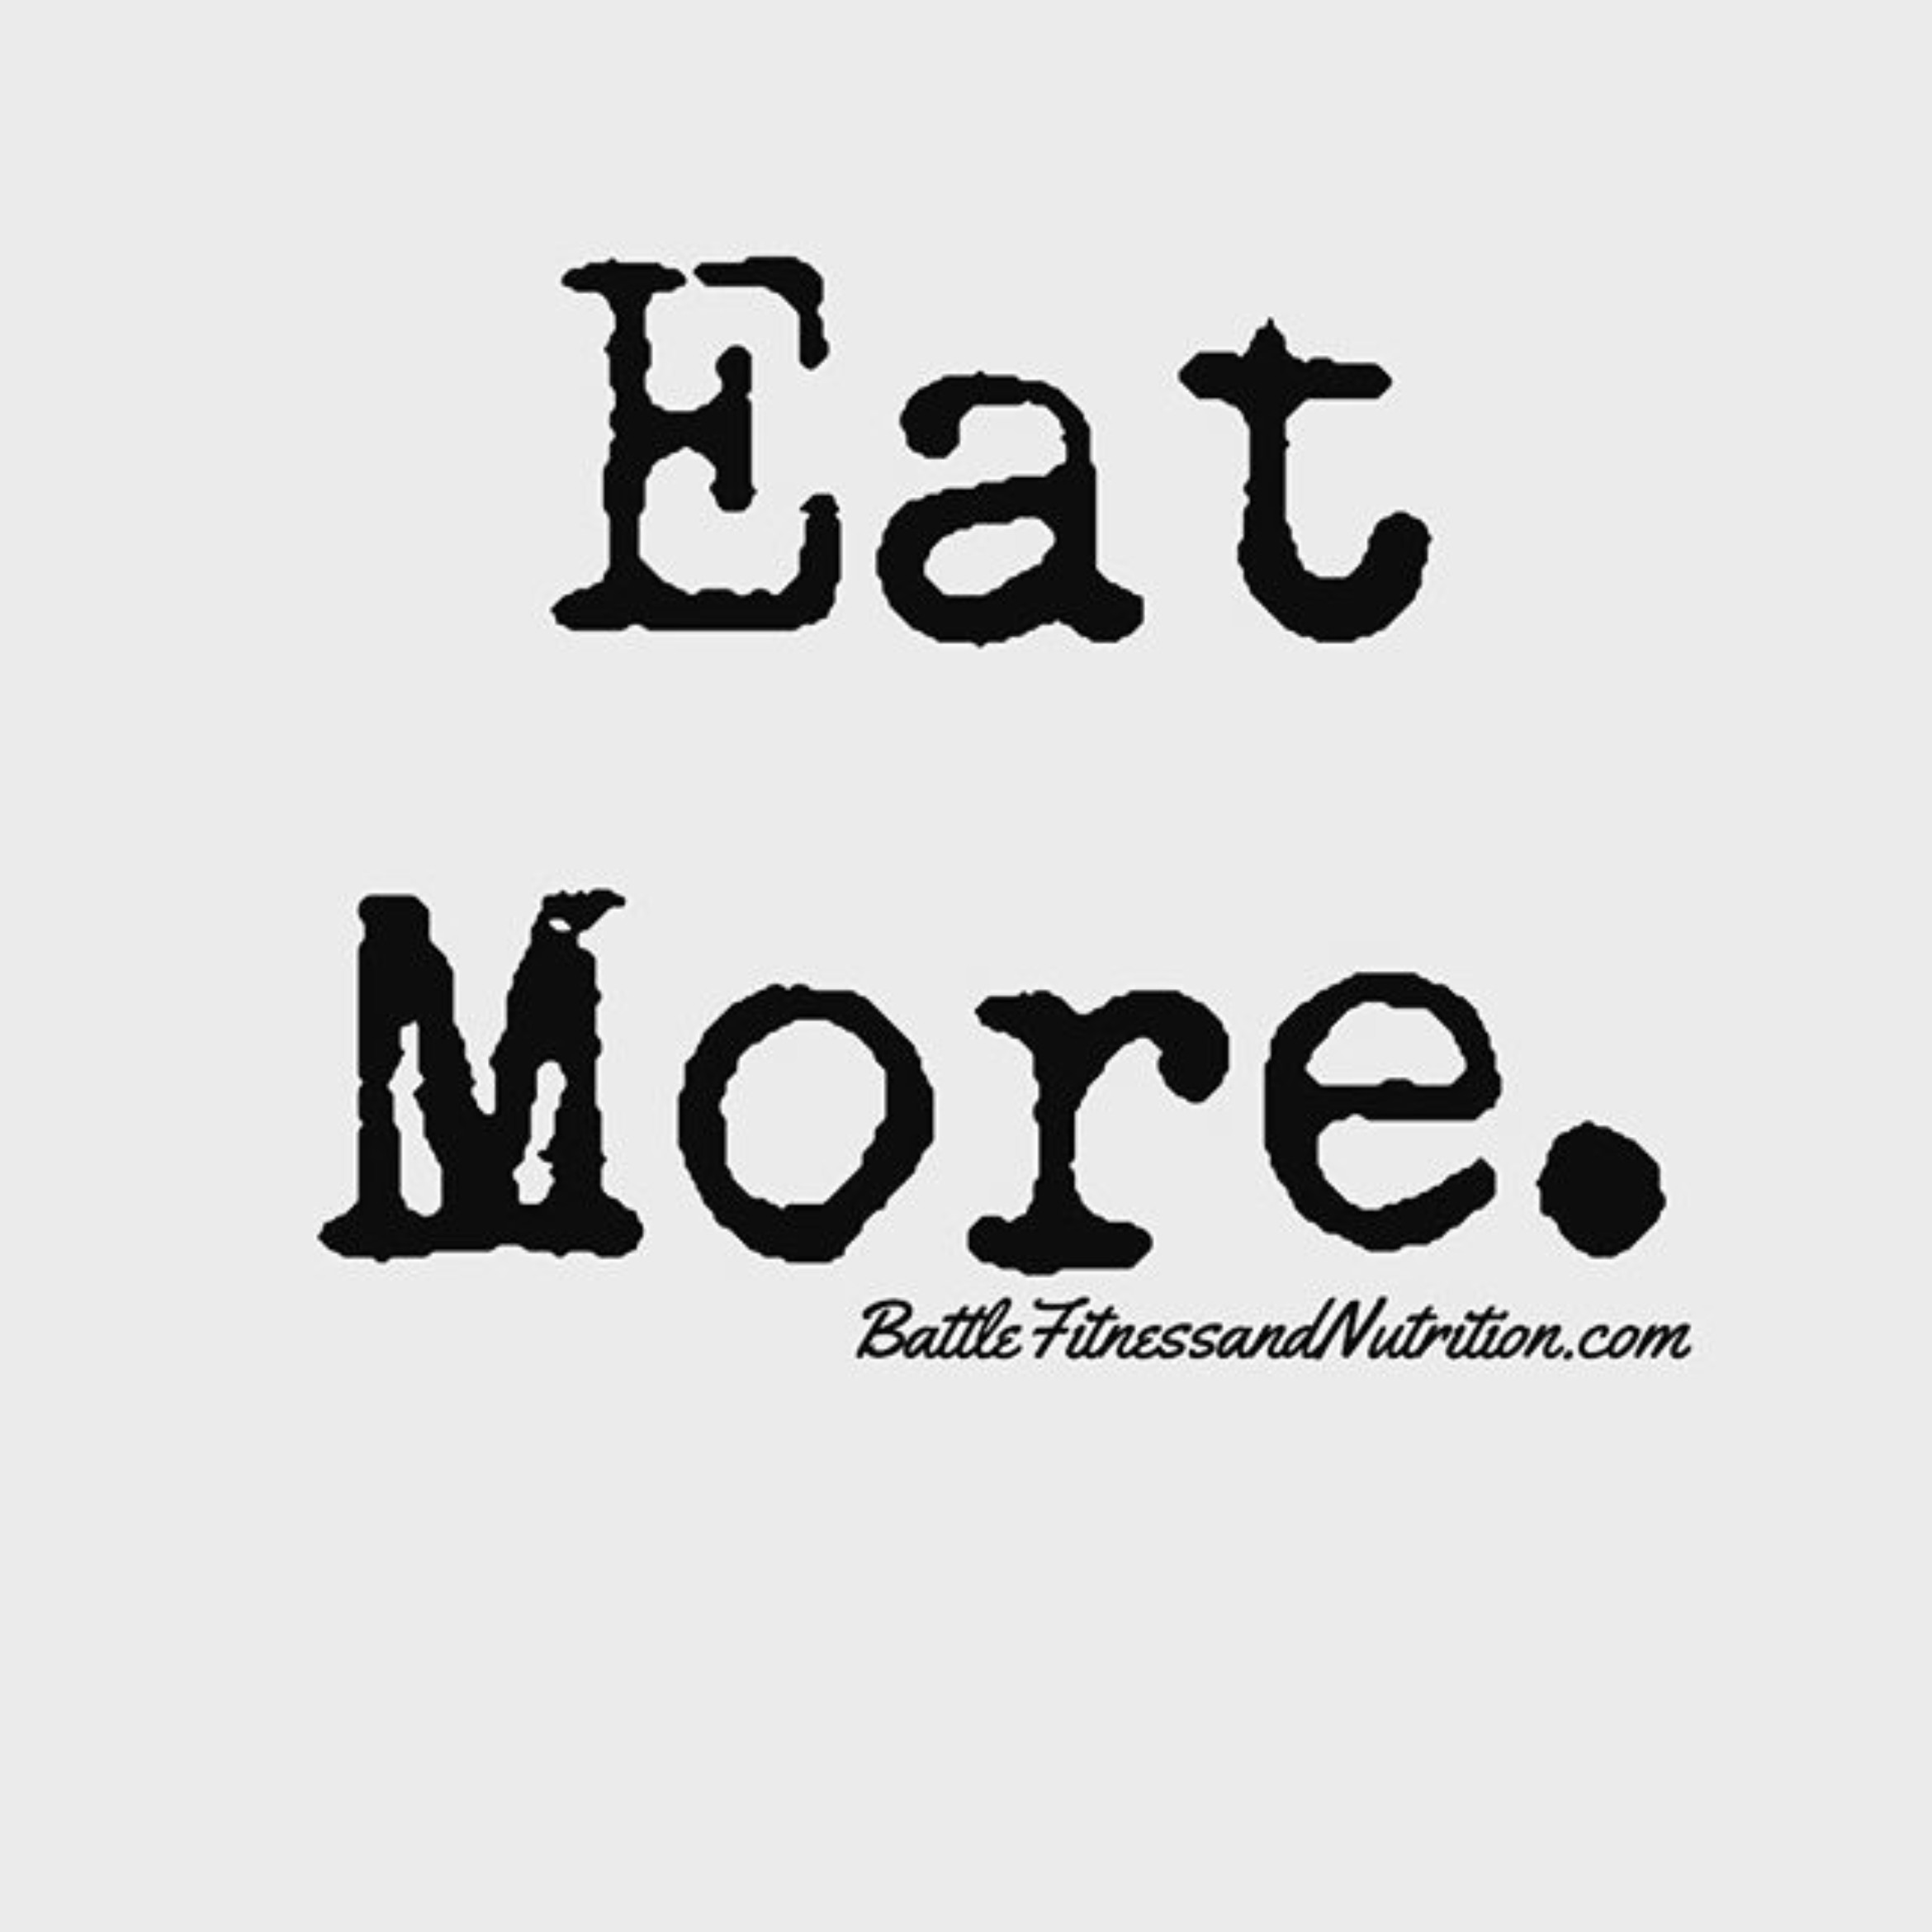 When we under eat & over exercise(6-7 days/week), we